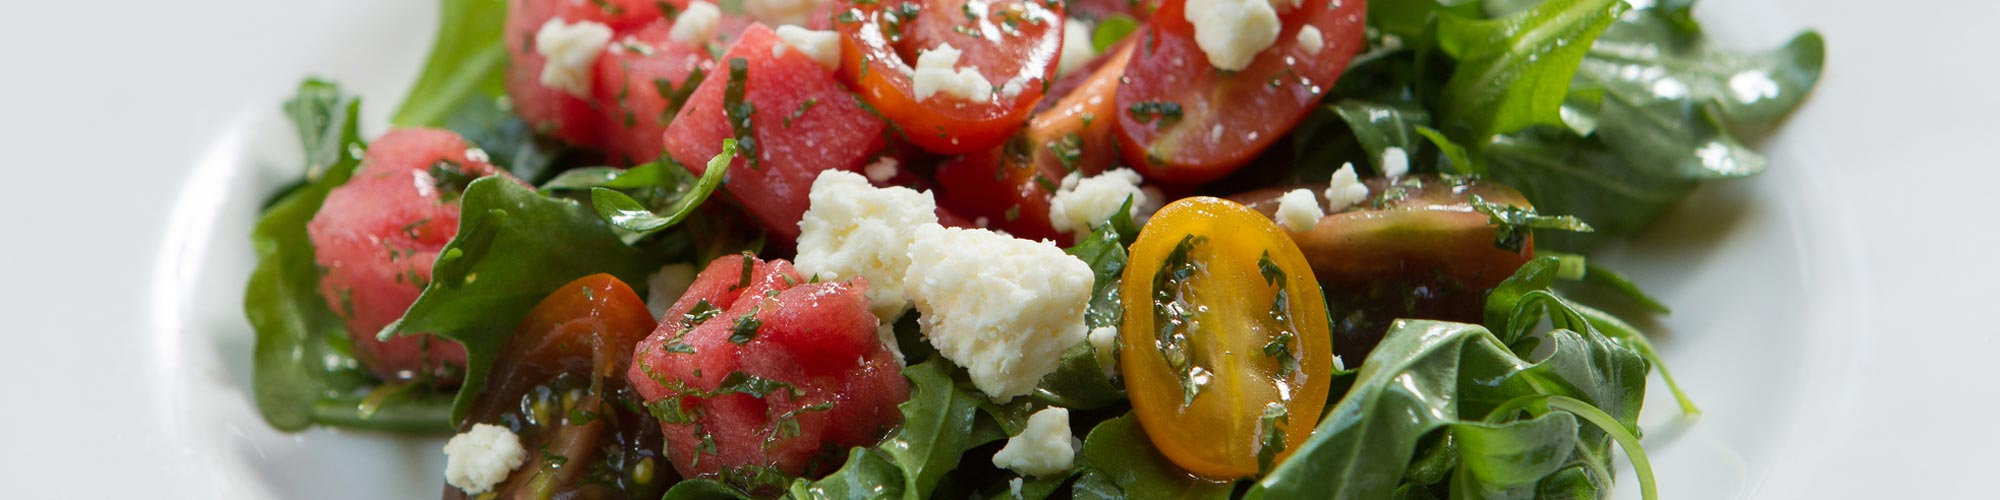 salad from D'Amico Catering